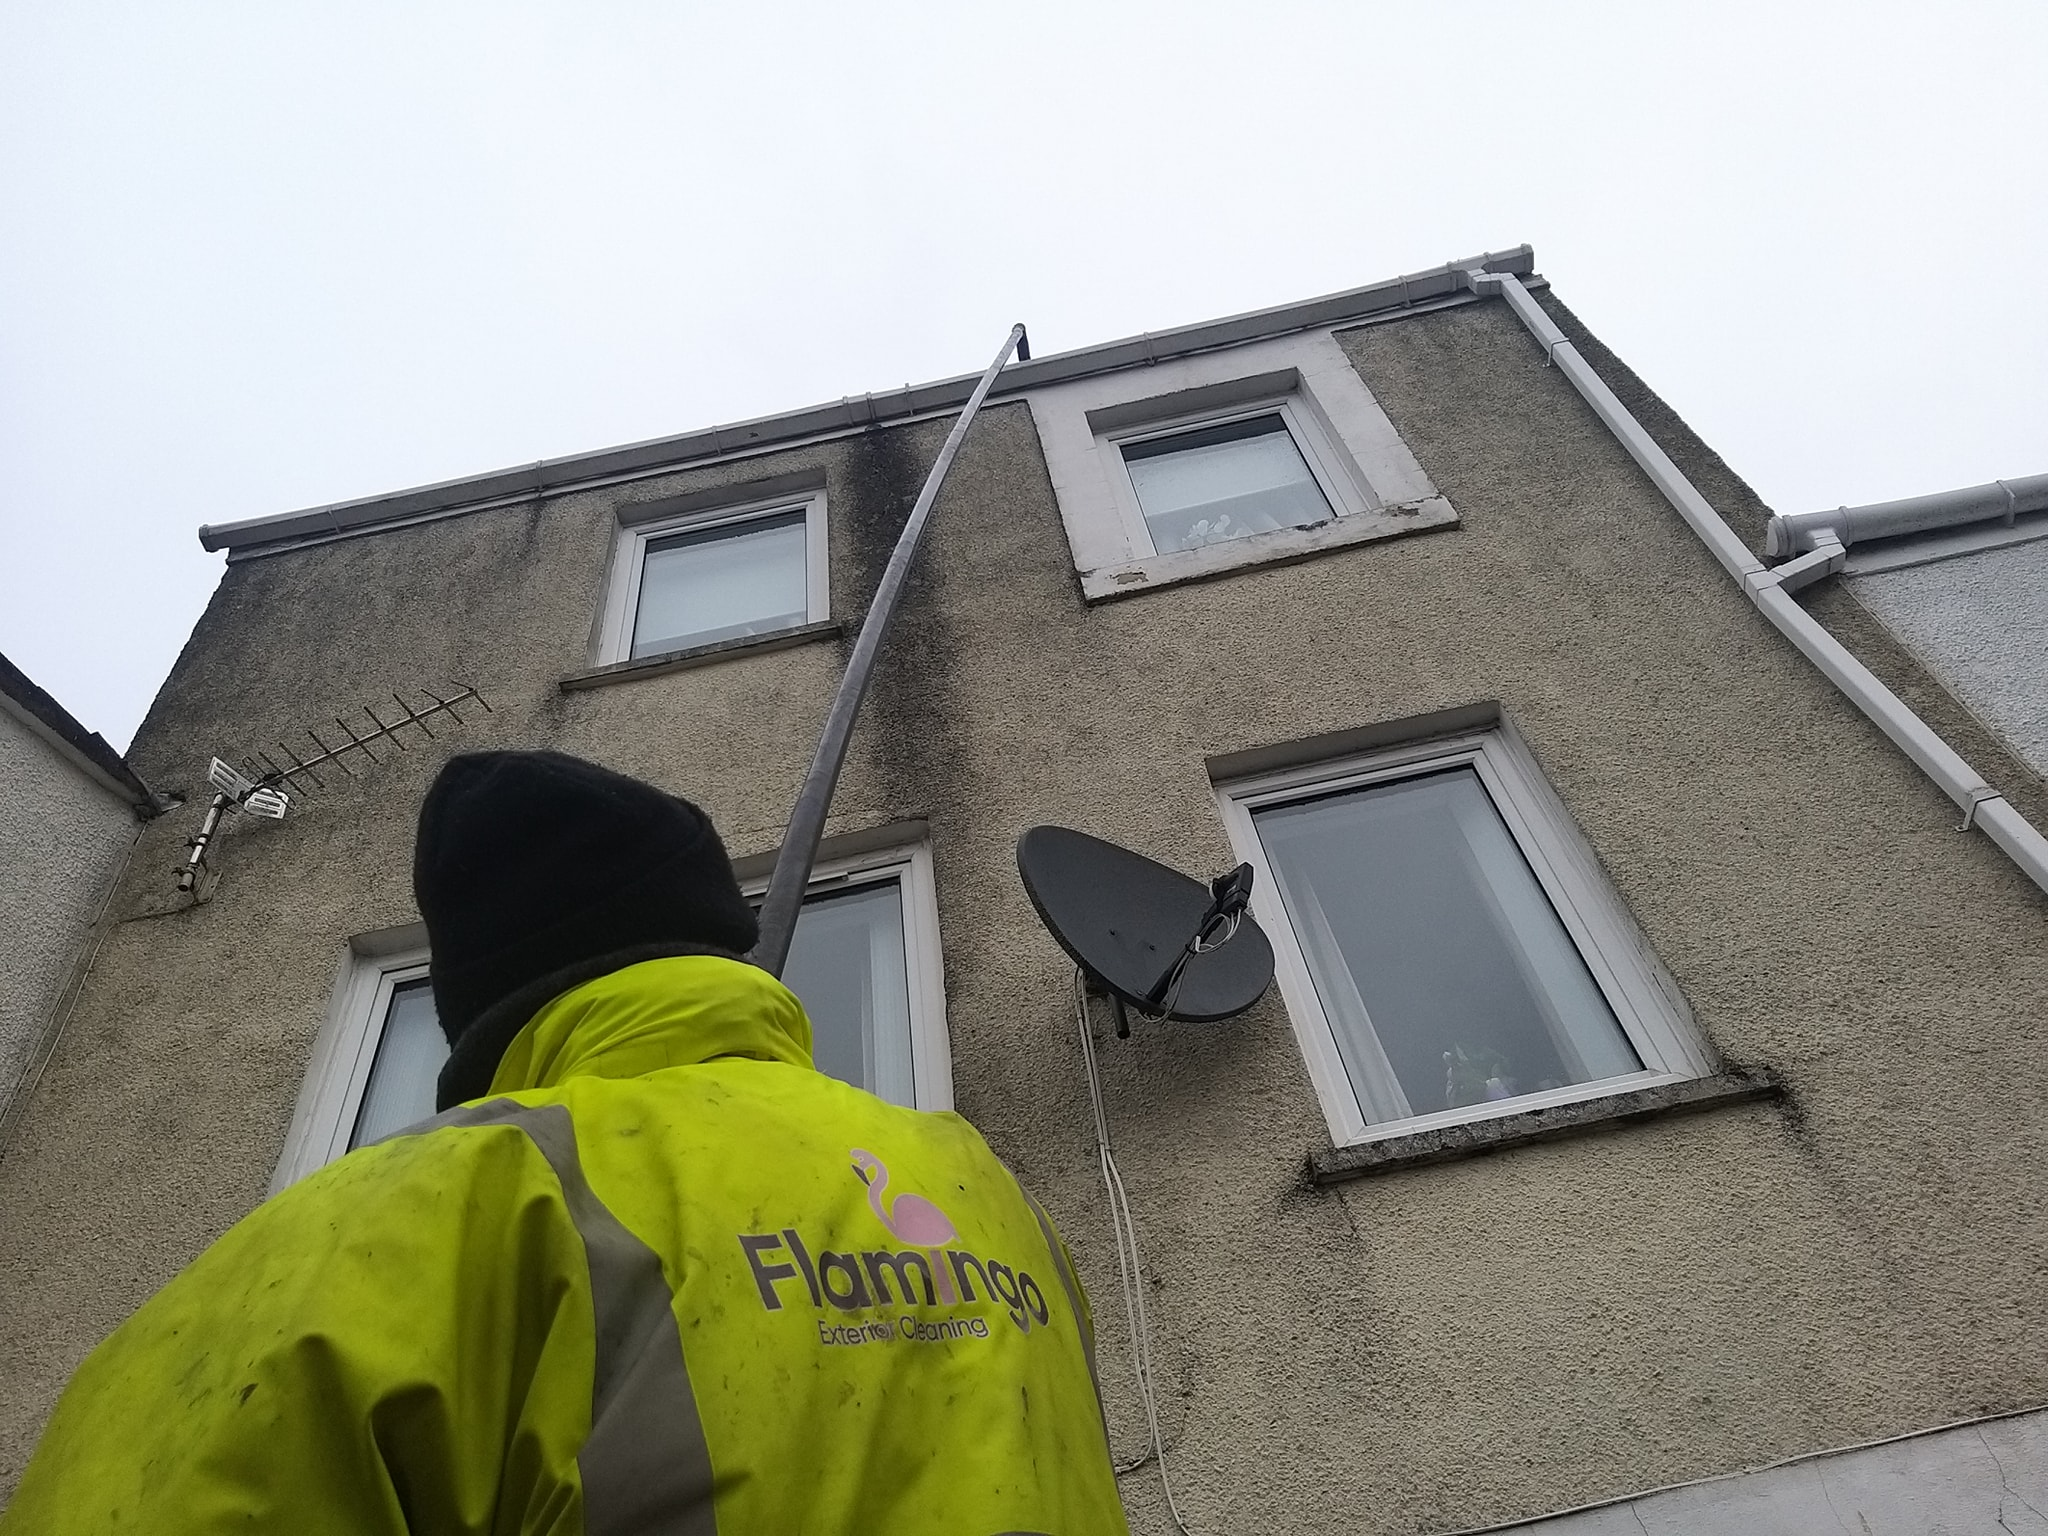 Glasgow gutter cleaners